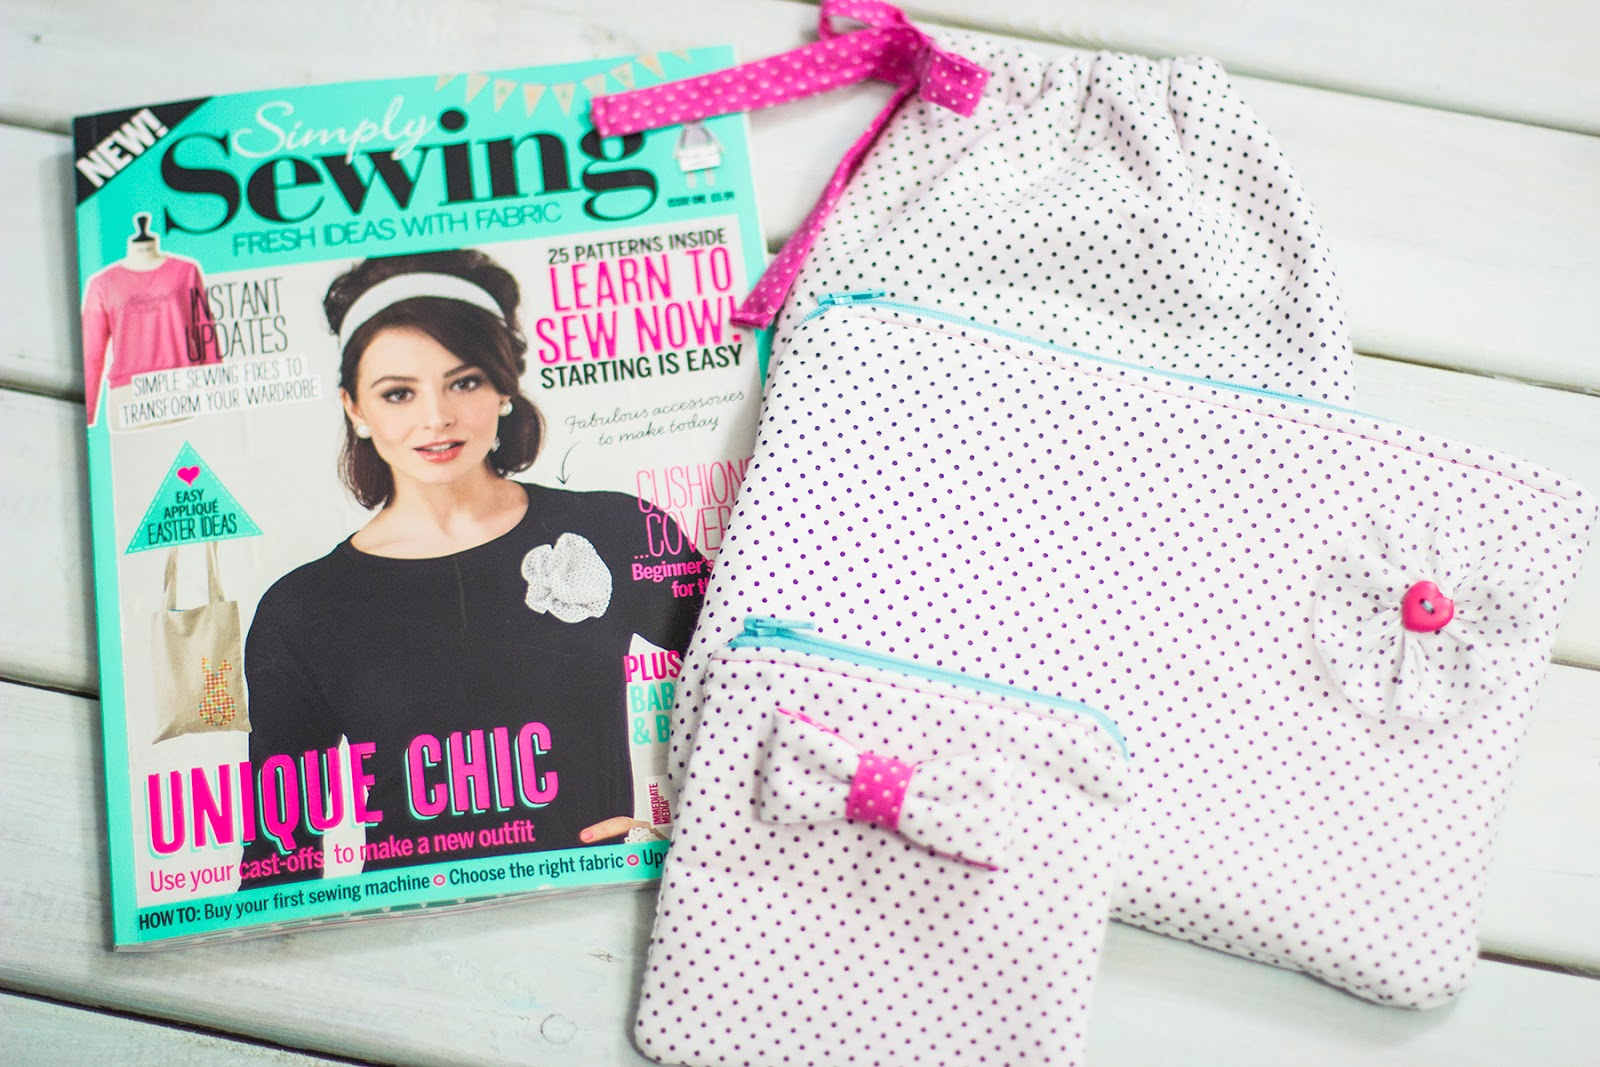 Live it love it make it february 2015 up one of my favourite bloggers portia lawrie for a regular feature and for now at least there are a bunch of great sewing tips in the back pages jeuxipadfo Image collections